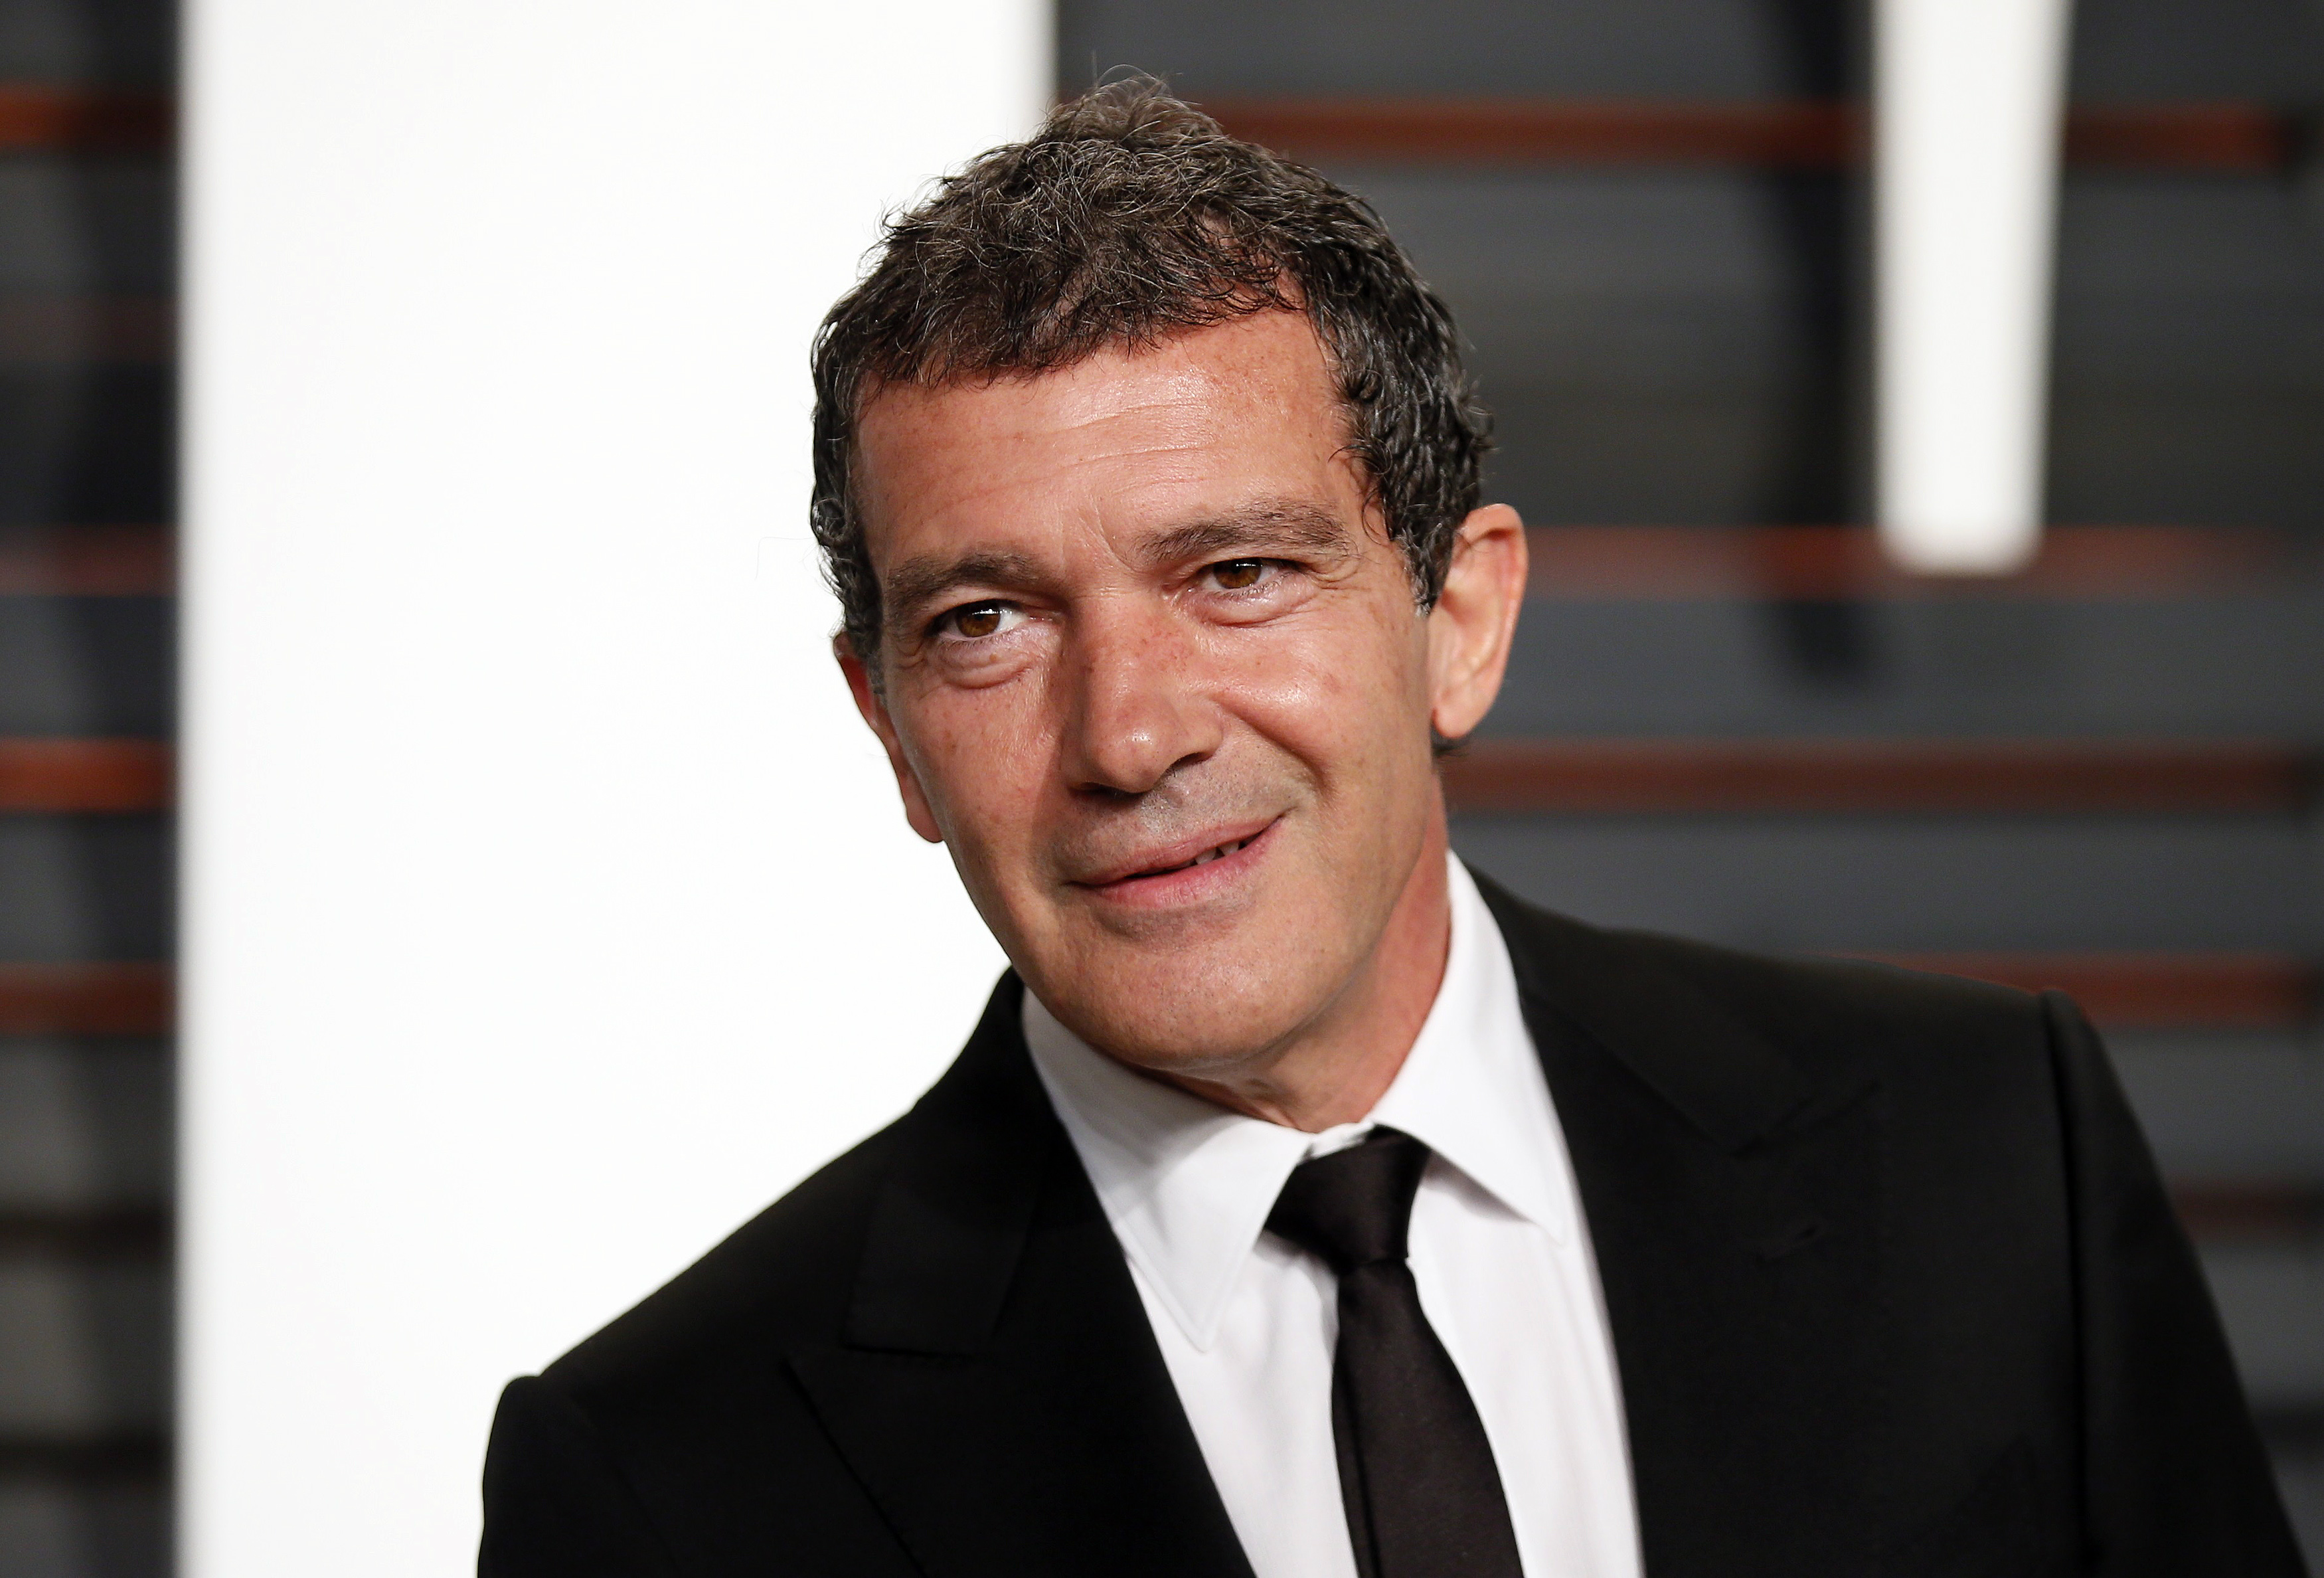 ... Platino' Second Edition: Antonio Banderas Receives Honorary Award Antonio Banderas